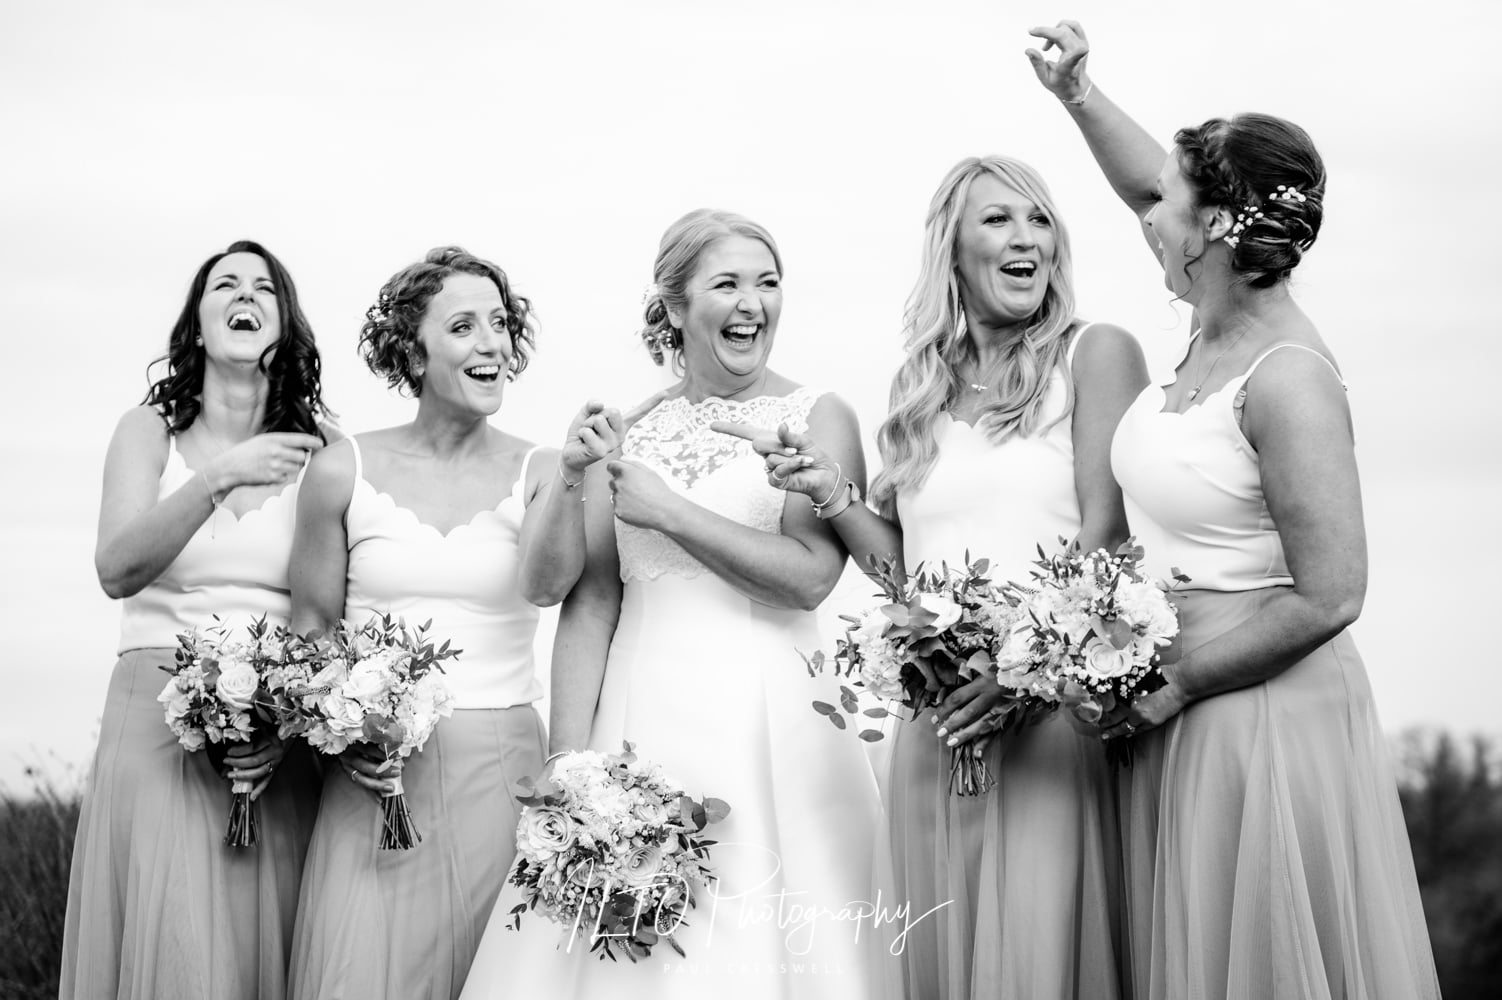 Fun wedding photographer west yorkshire ILTO photography